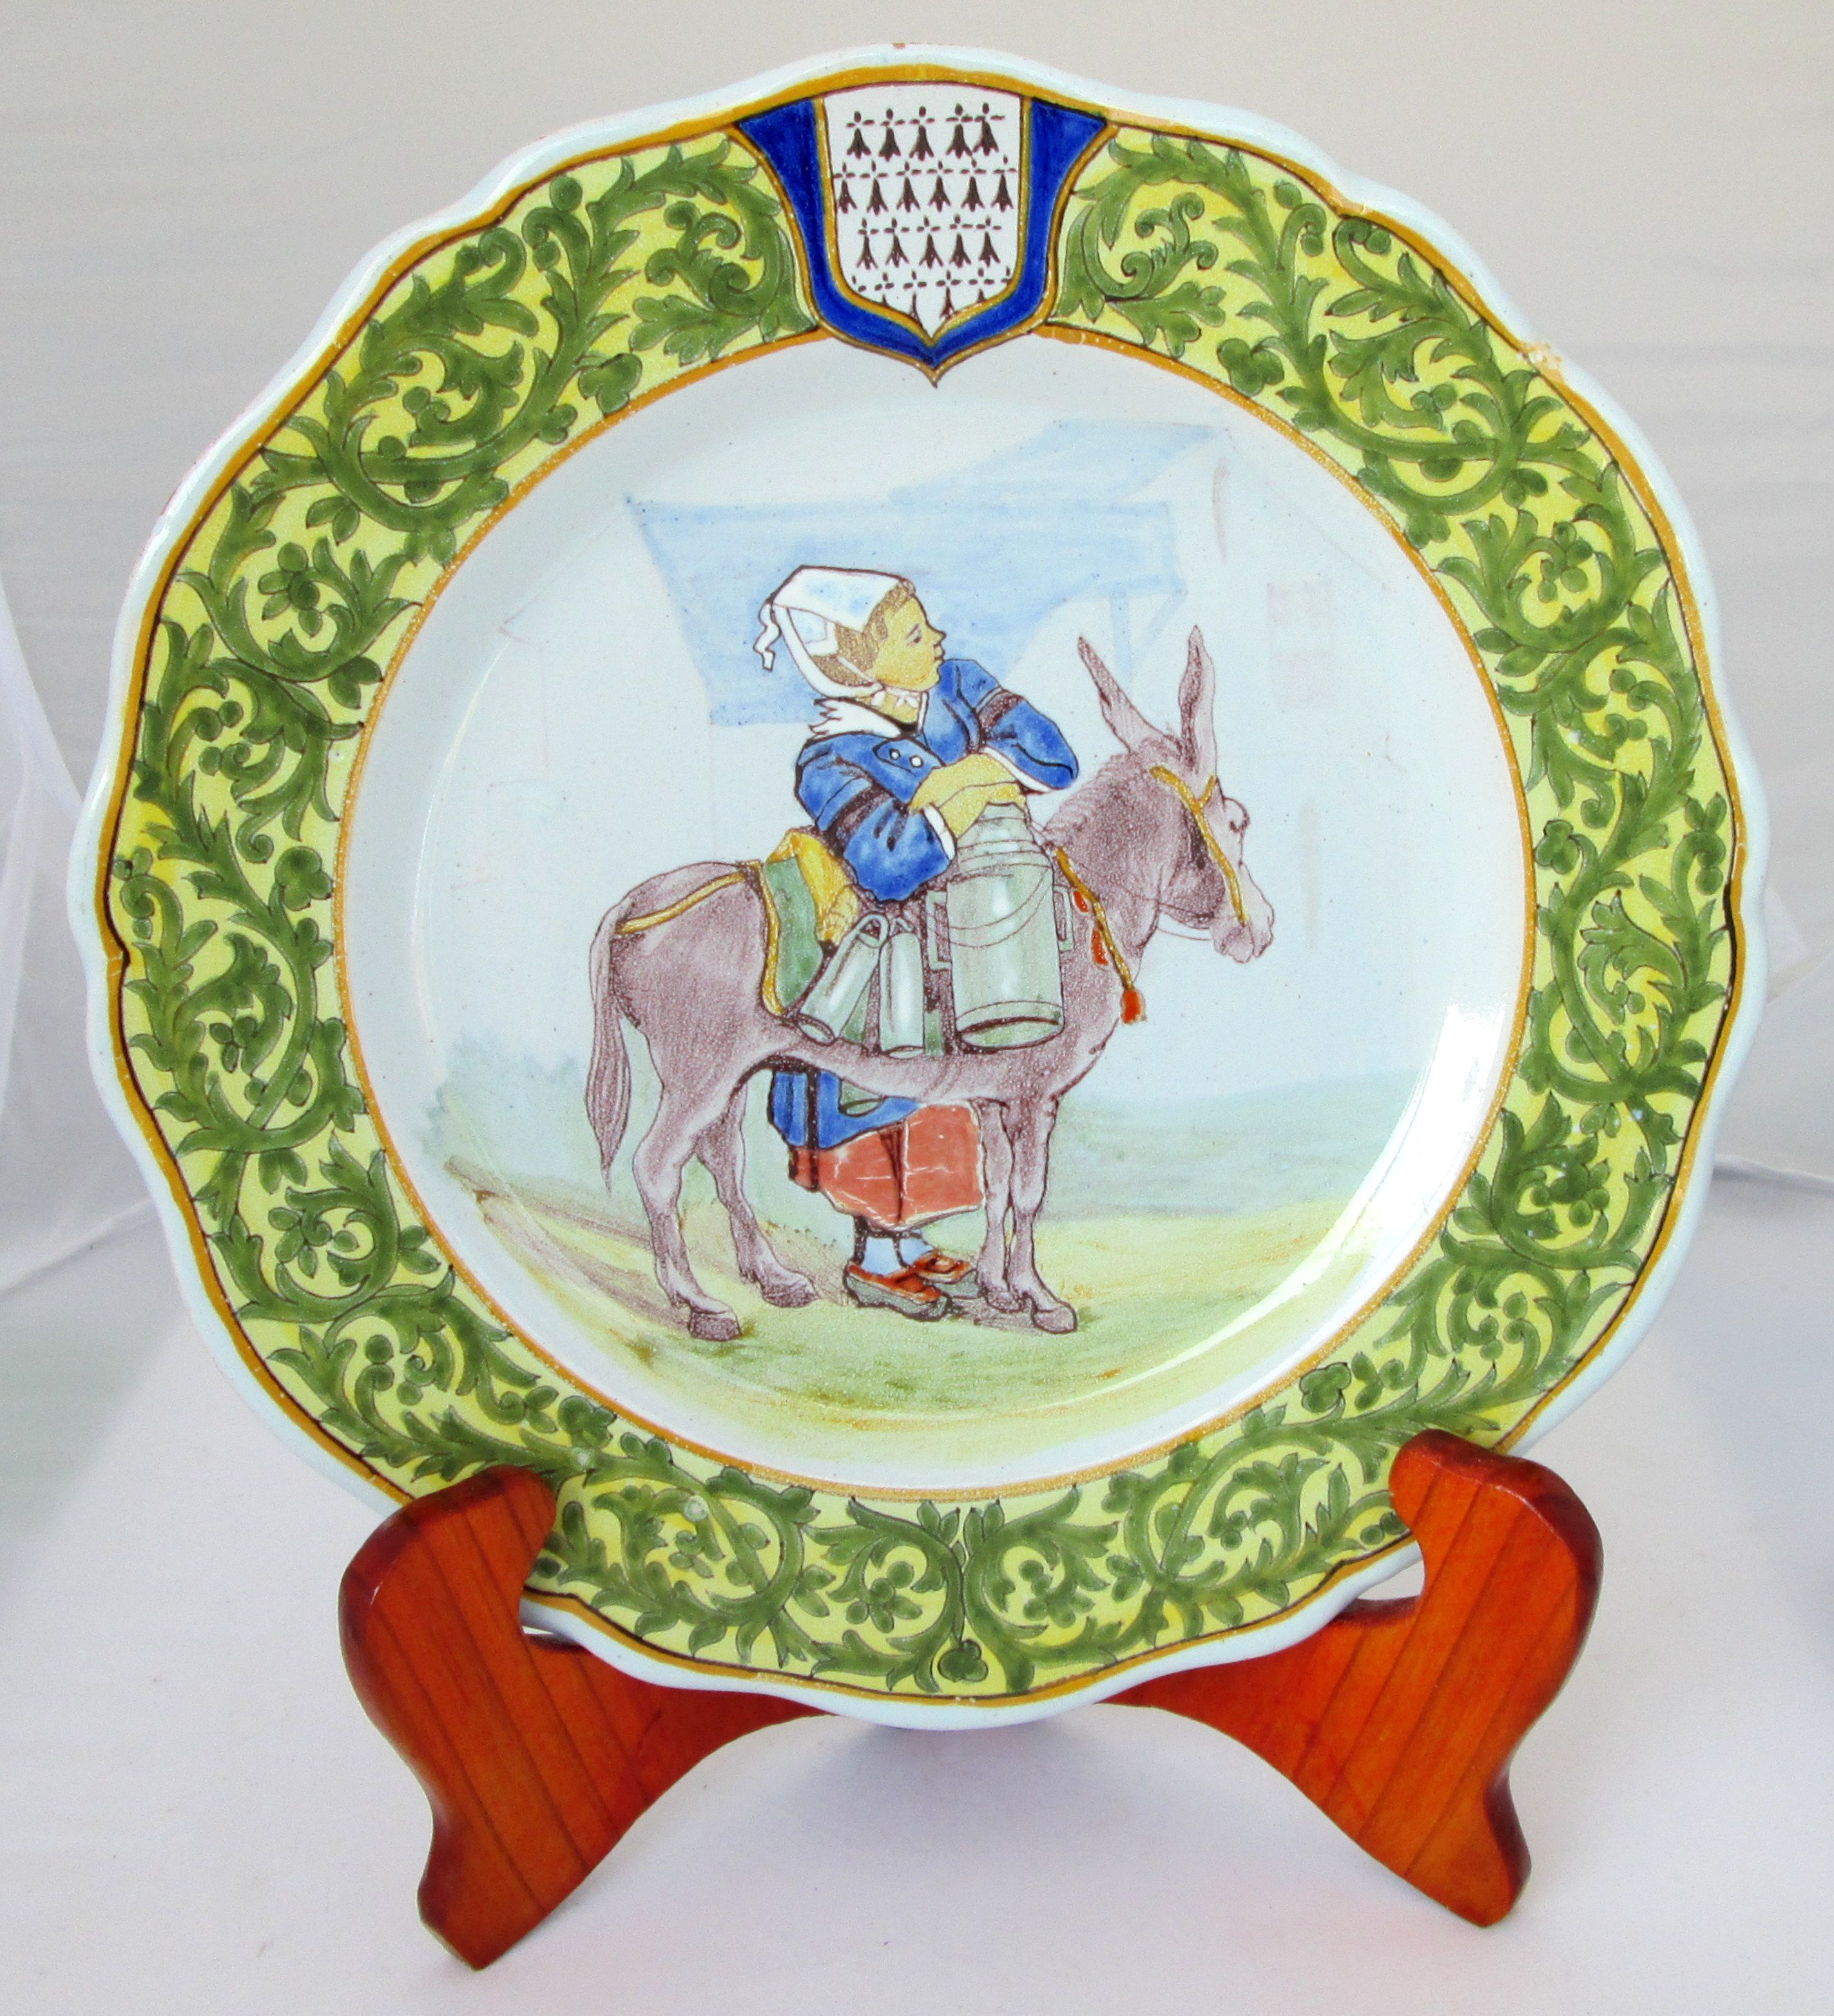 The Milkmaid And Her Charming Donkey Quimper Plate Photo Courtesy Of Countryfrenchpottery Com Join Our Mailing List Faience De Quimper Quimper Bretagne